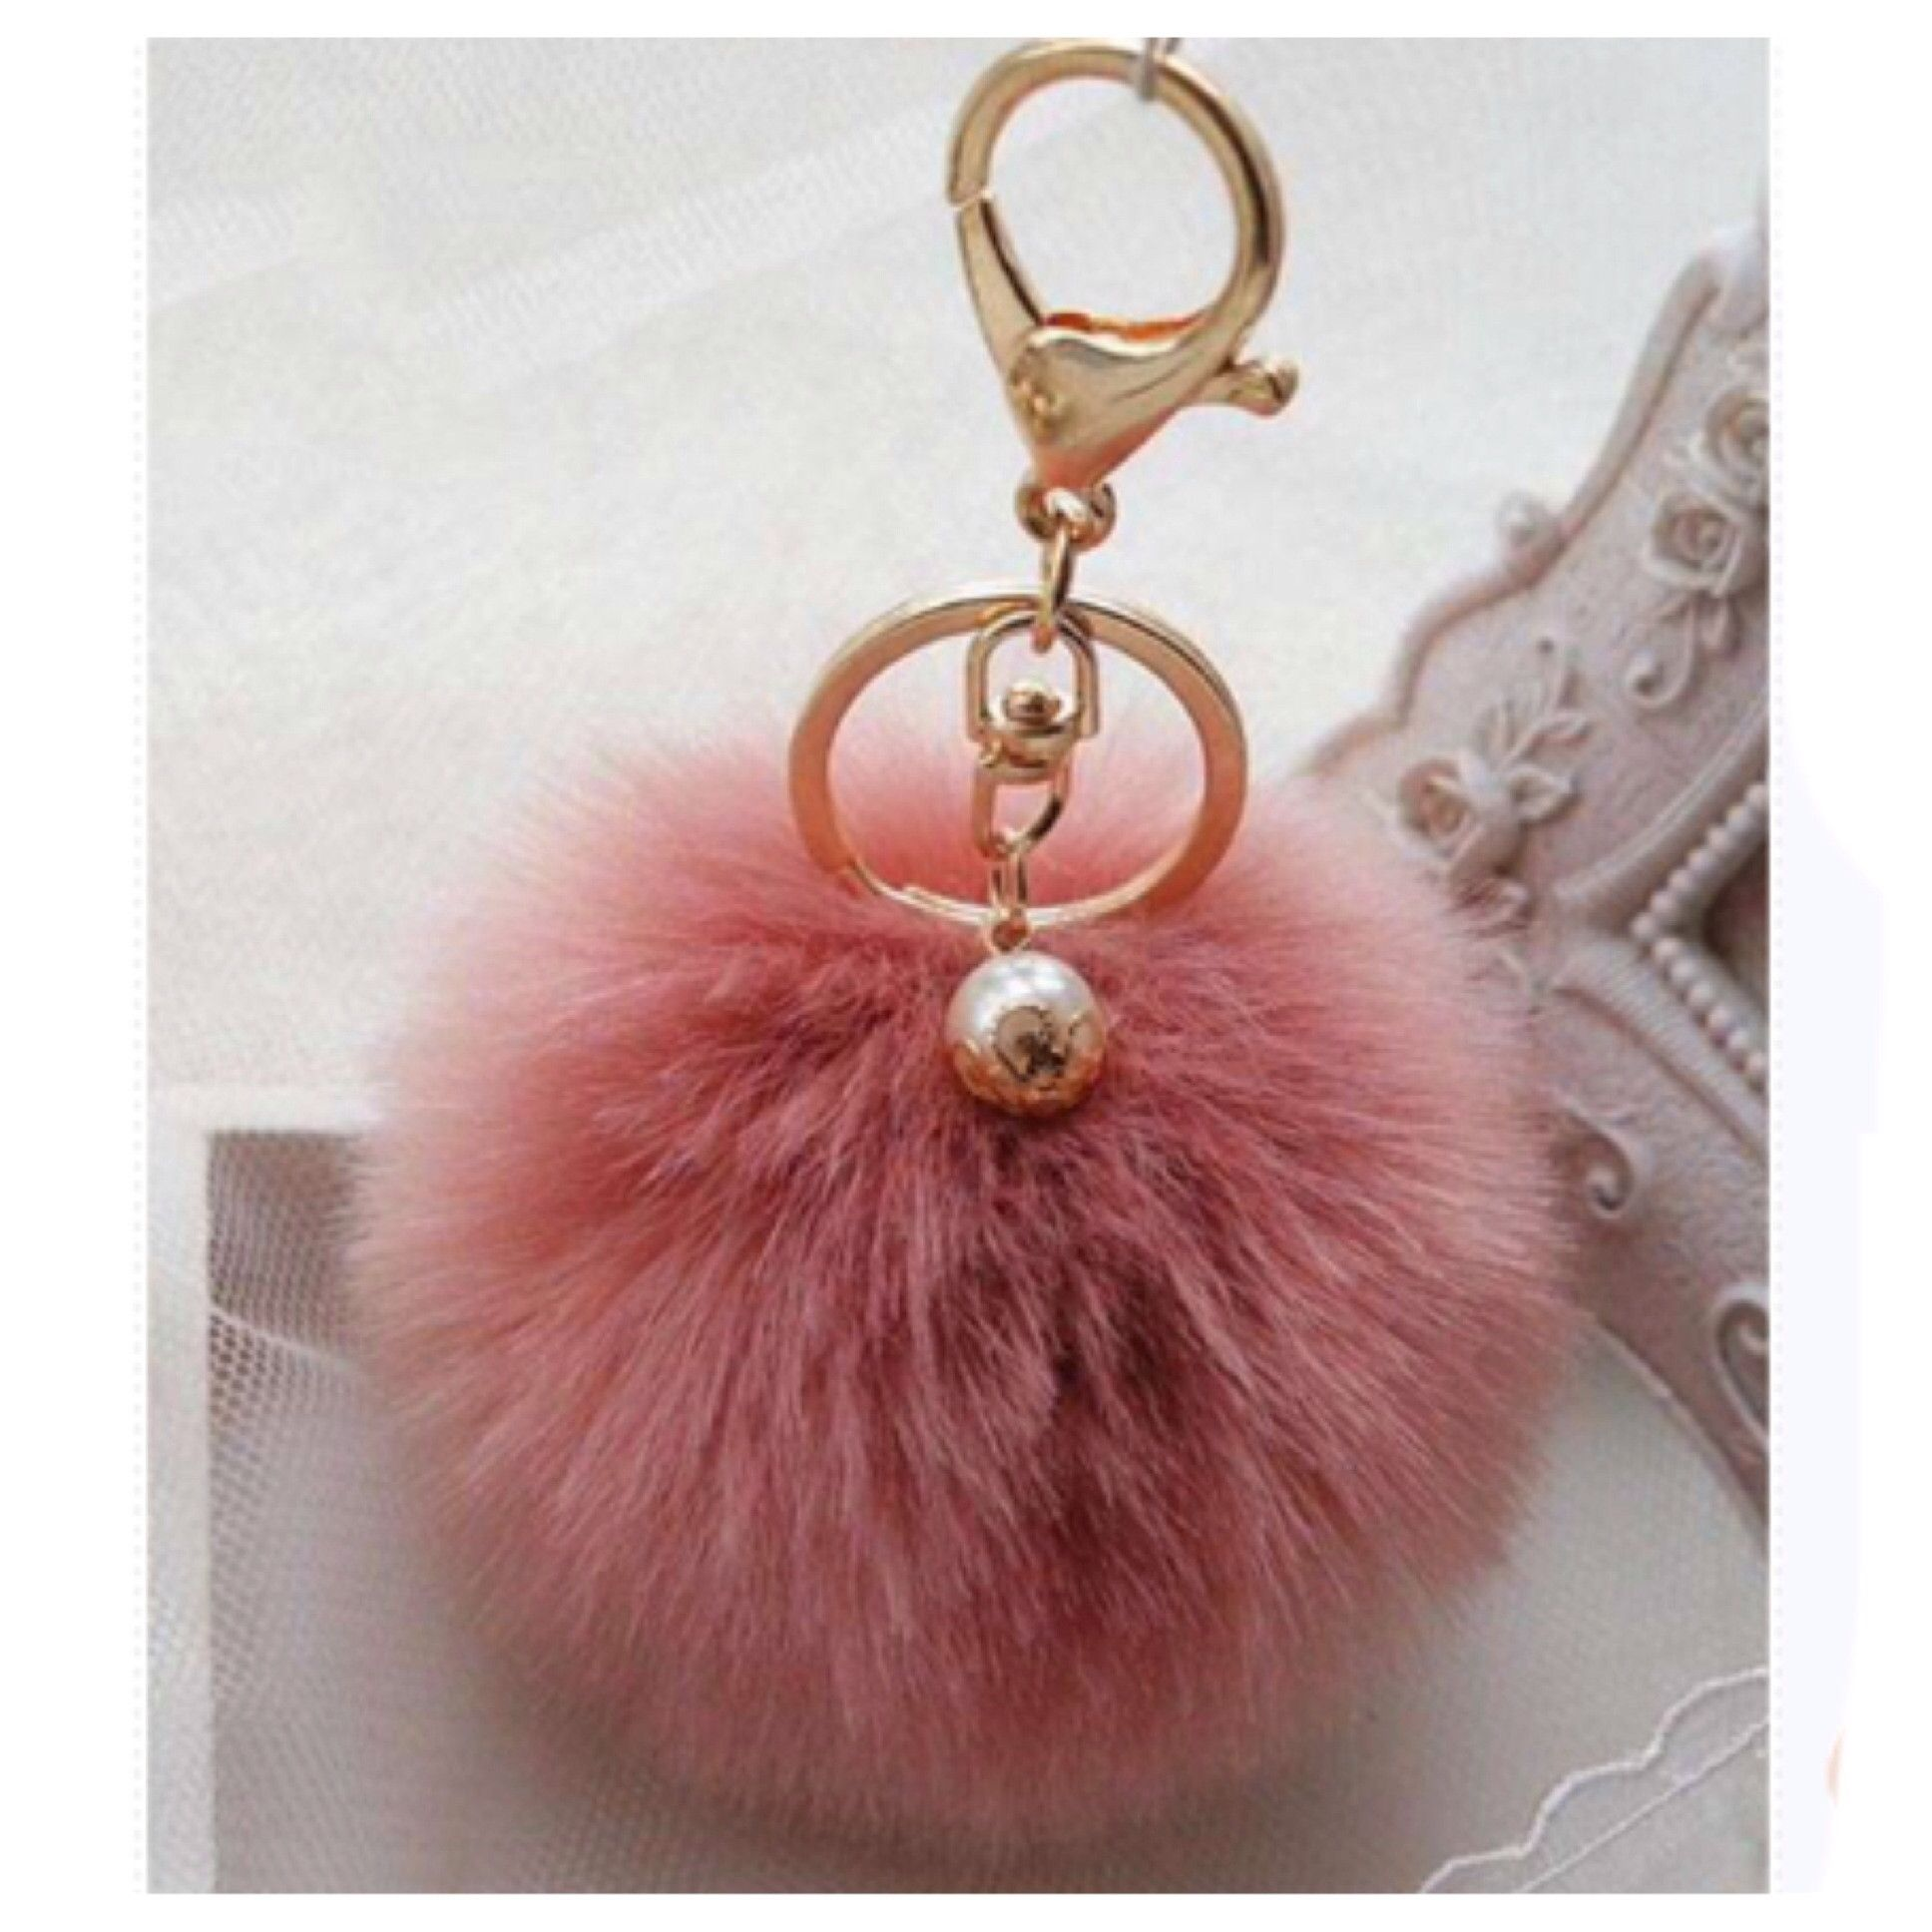 Absolutely Adorable and Fun Accessory! Dusty Pink Fur Pom Pom Keychain,  Purse Charm 8cm